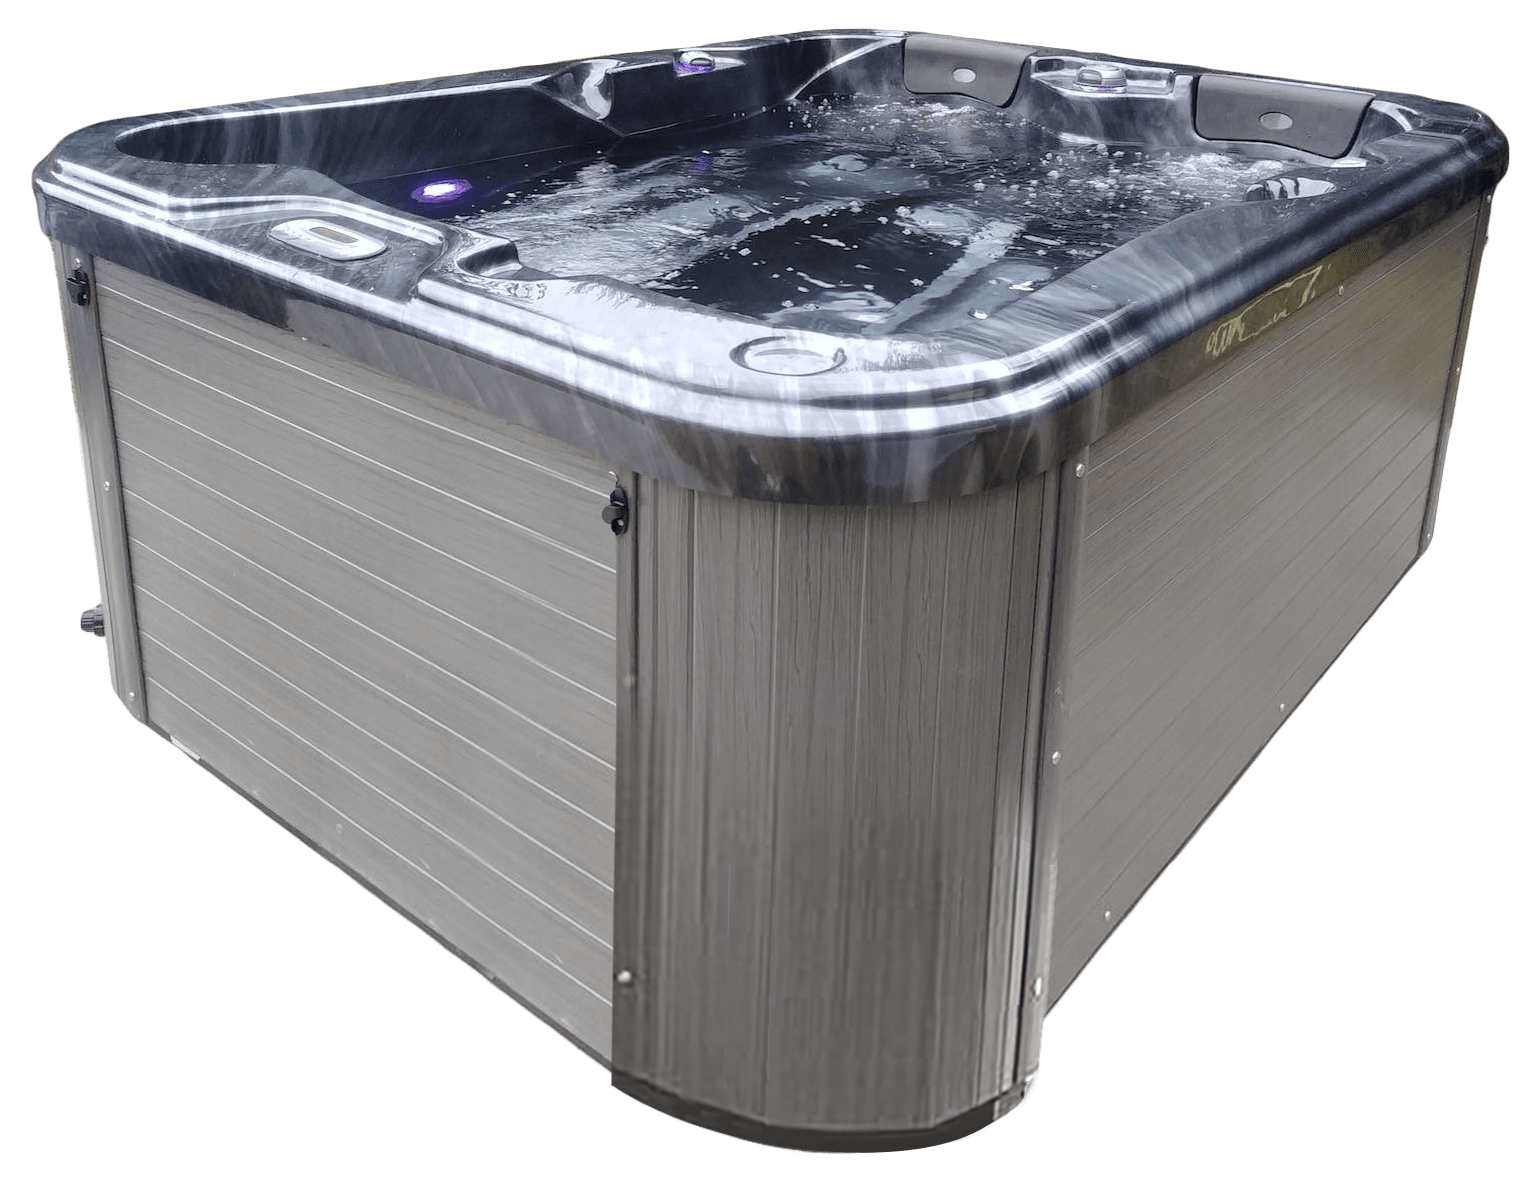 O347 Deluxe Hot tub